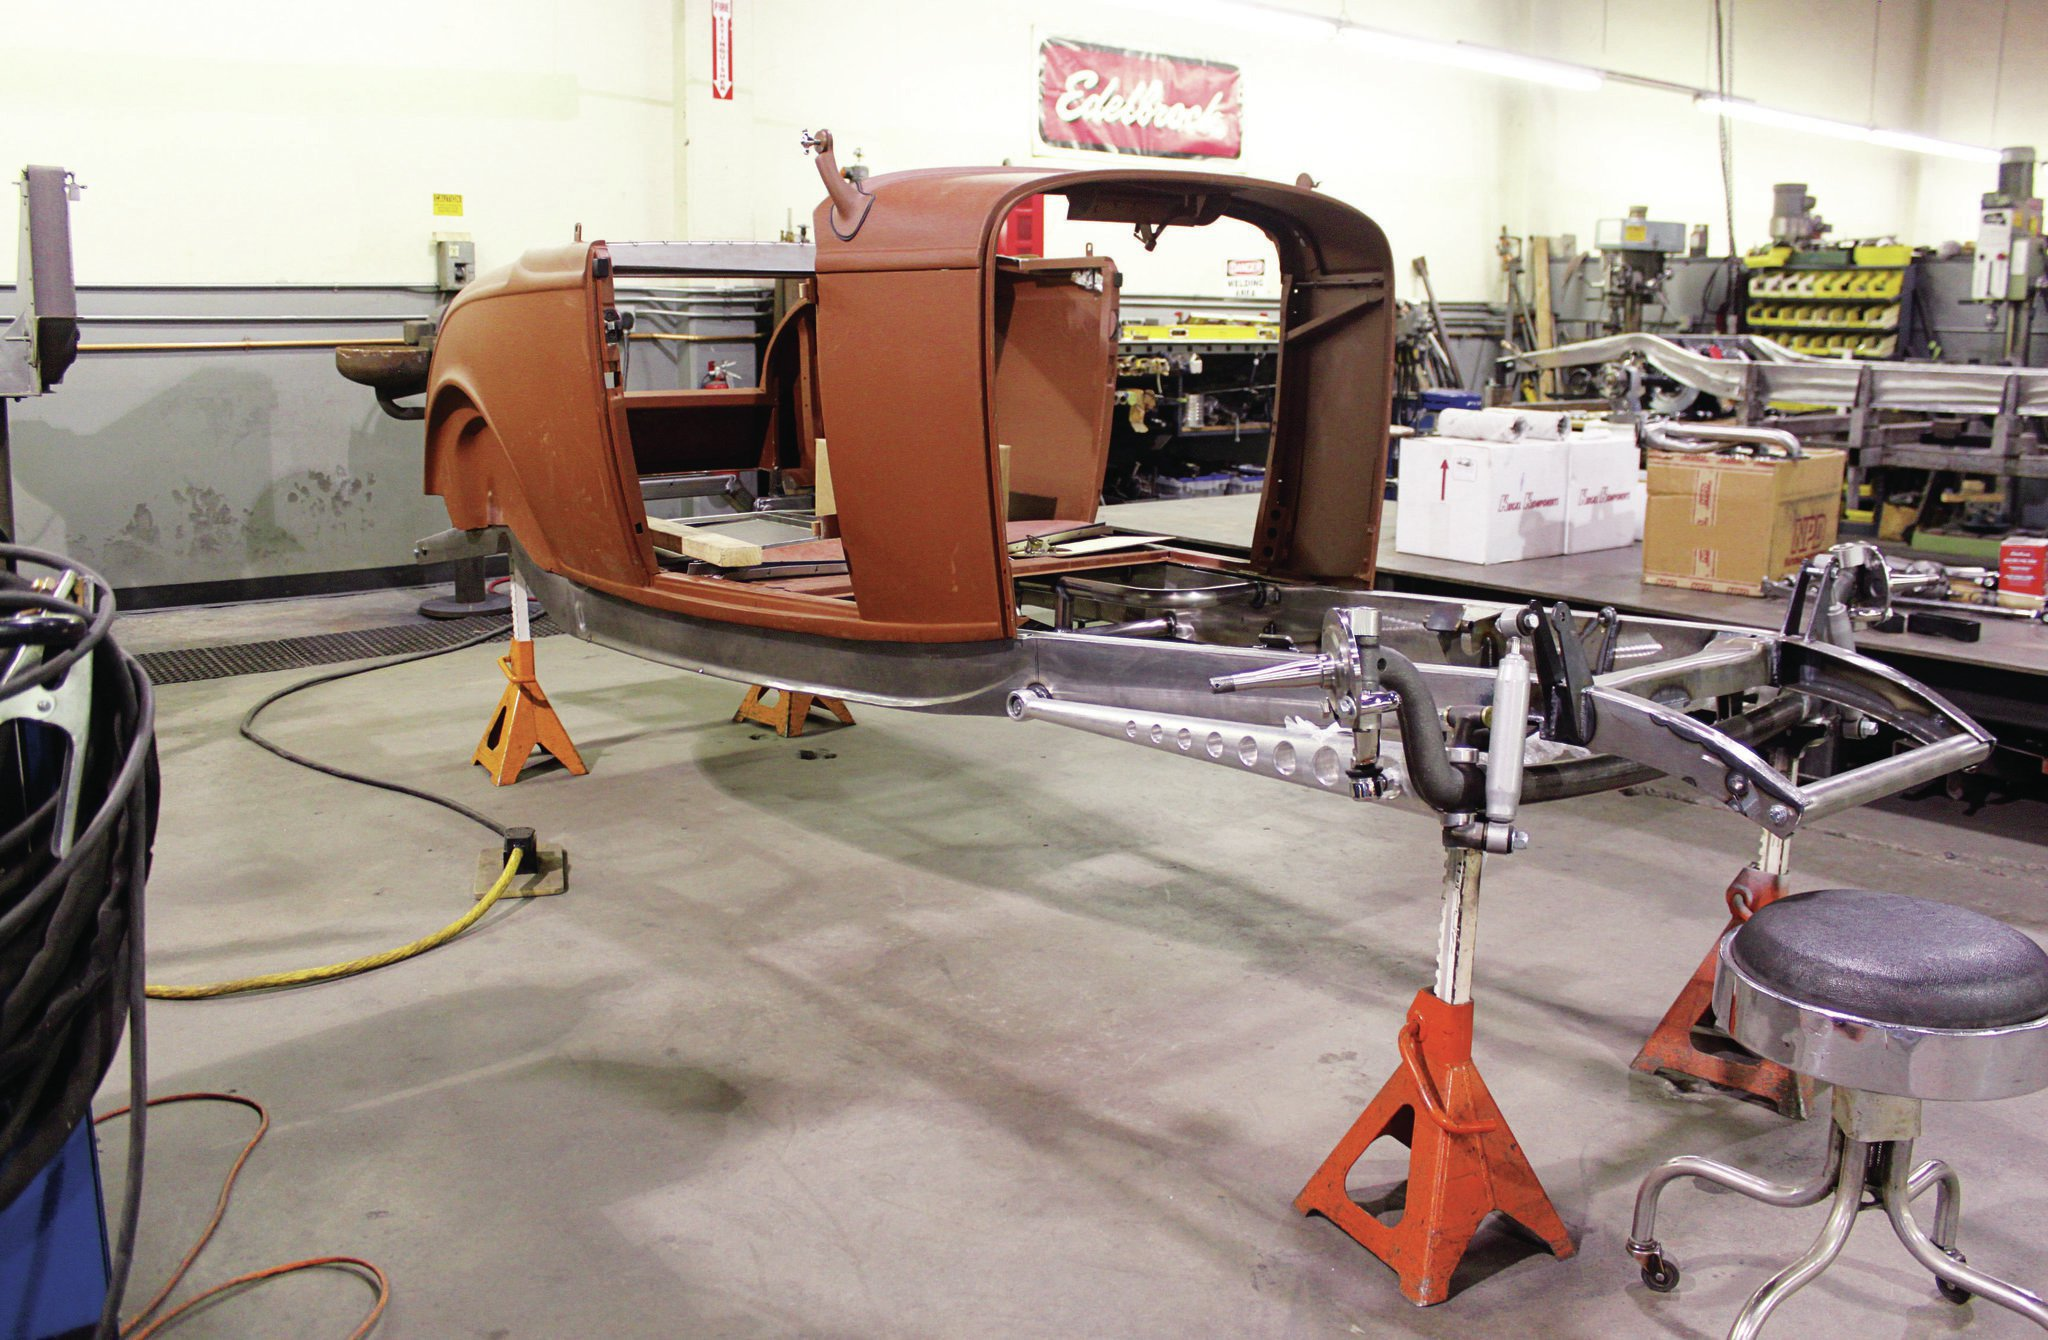 The reproduction Brookeville 1932 Ford roadster body is being test-fit to the chassis, while reinforcement has begun with a panel tacked into the body just behind the seat. One of Brizio's signature modifications is how he eliminates the two-bolt spreader bar flanges and instead locates the spreader into the front hole in the frame, then welds up the rear hole.